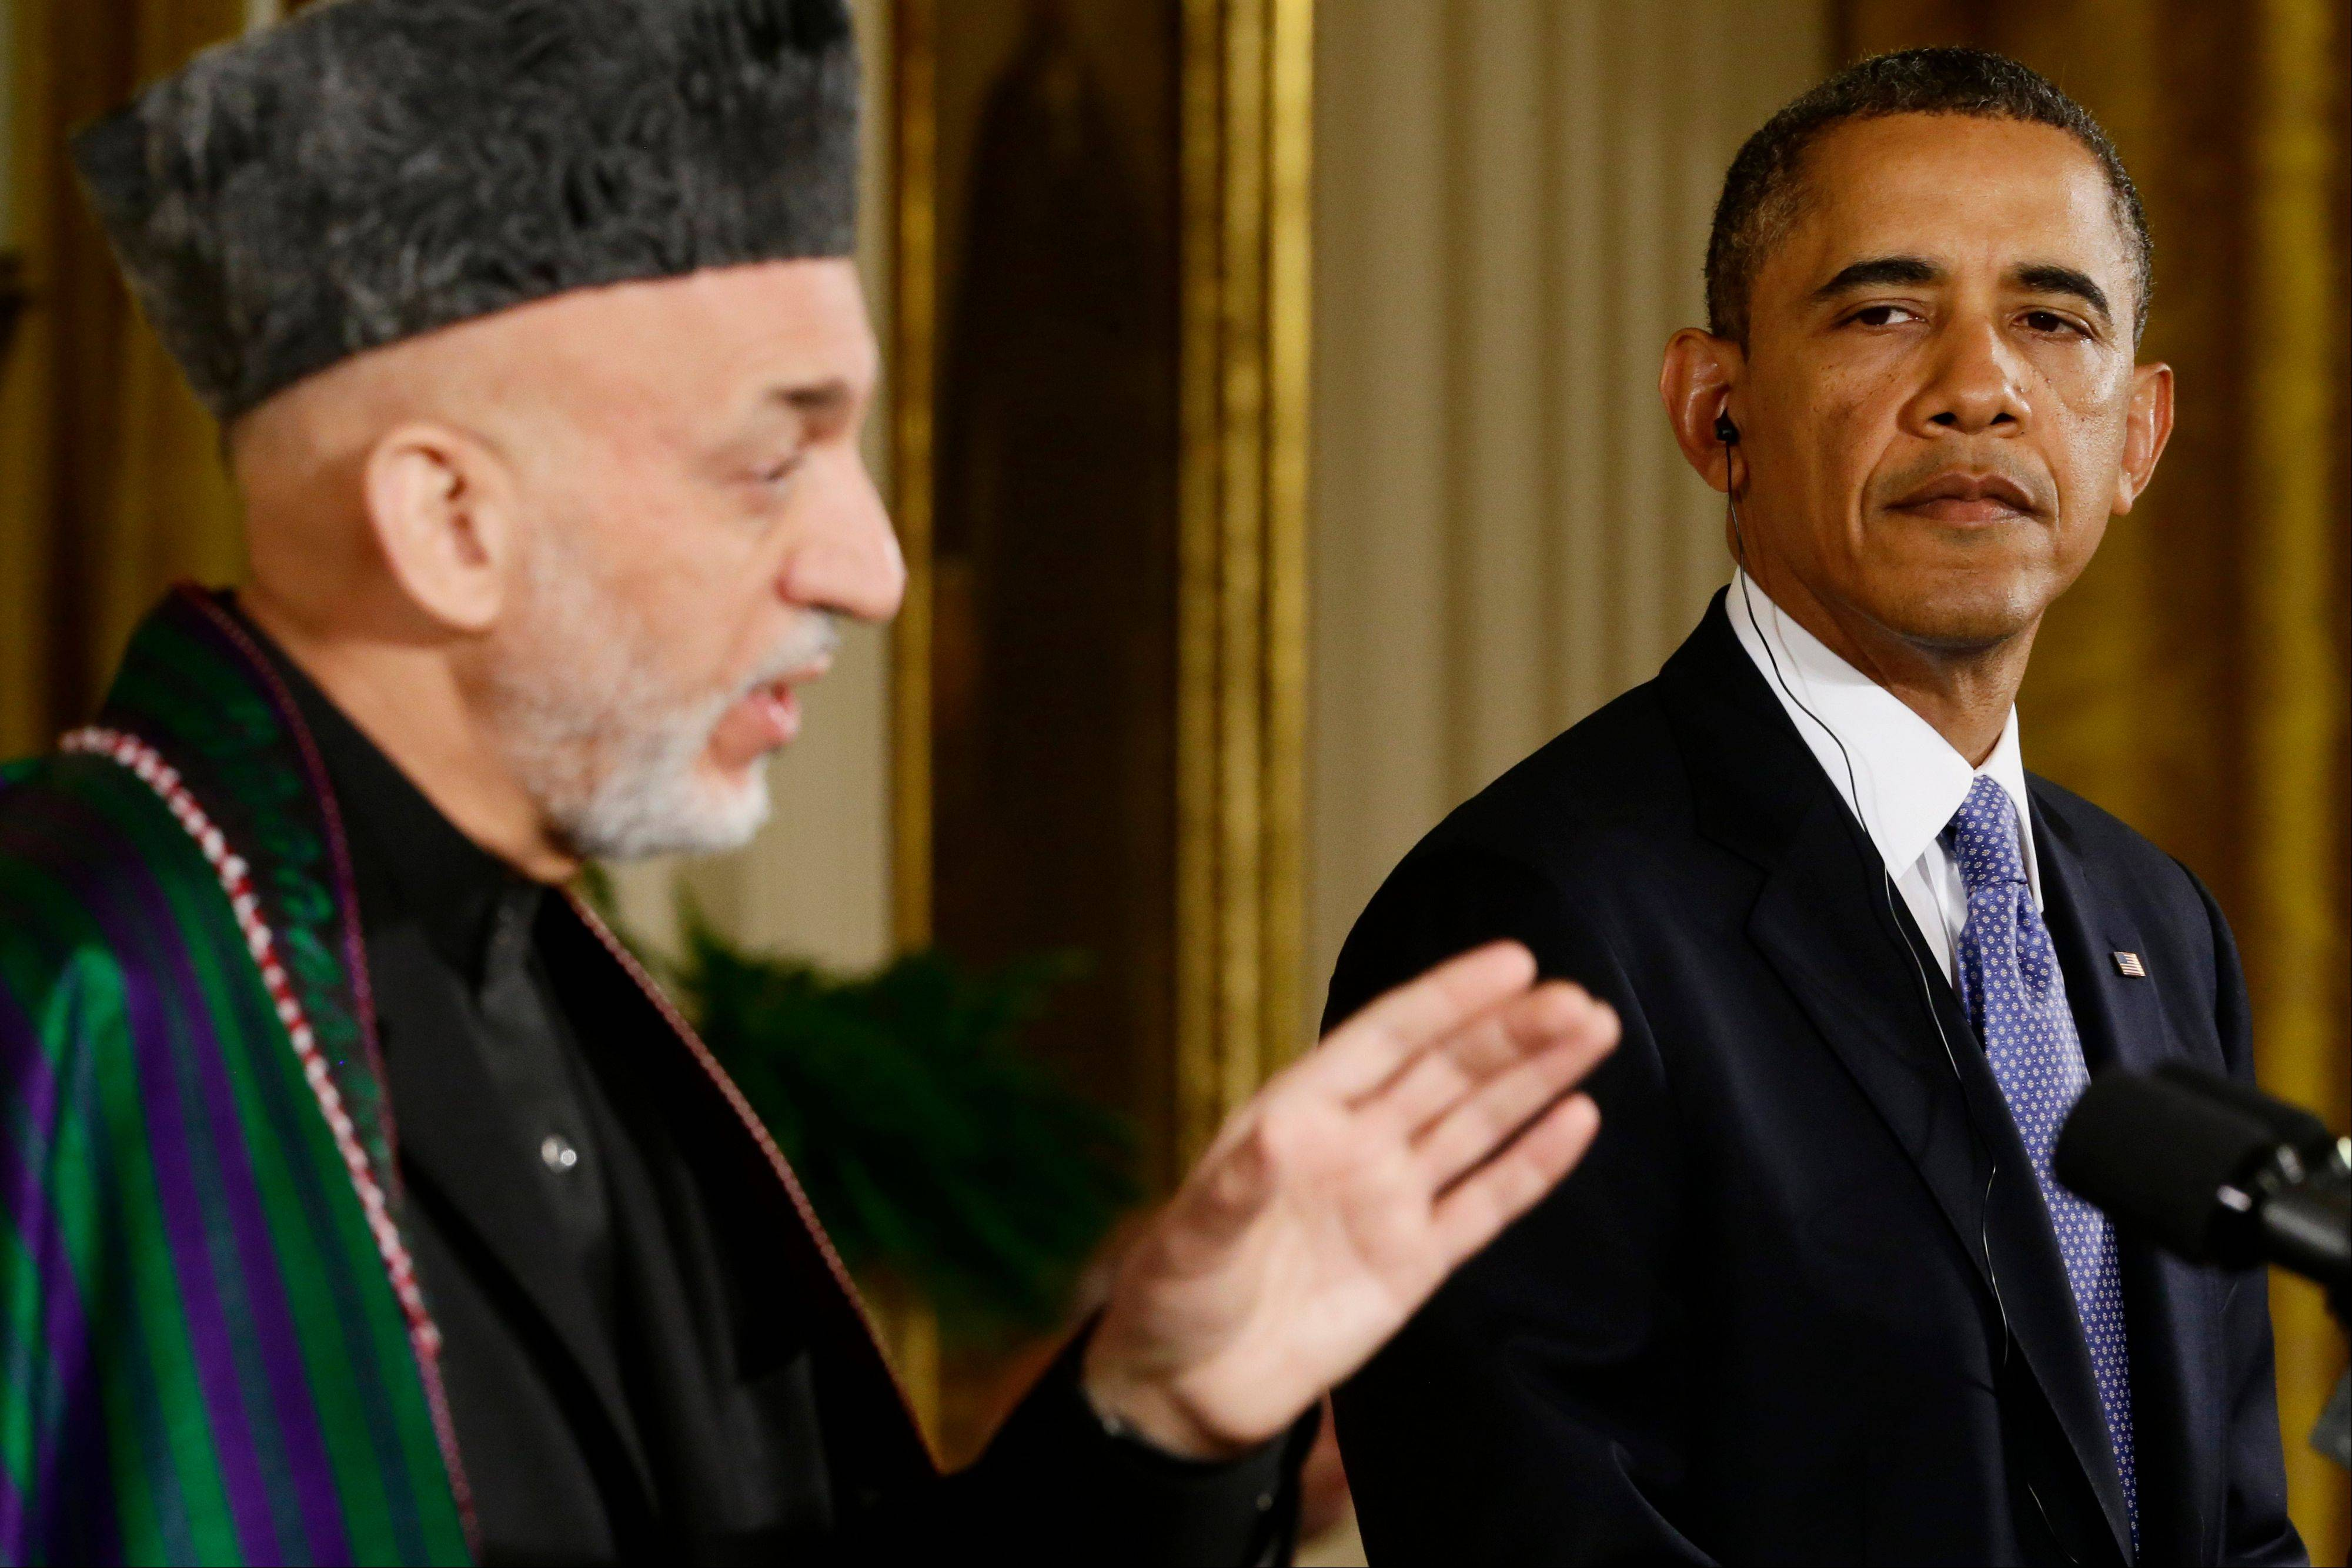 President Barack Obama listens Friday as Afghan President Hamid Karzai speaks during their joint news conference in the East Room at the White House.